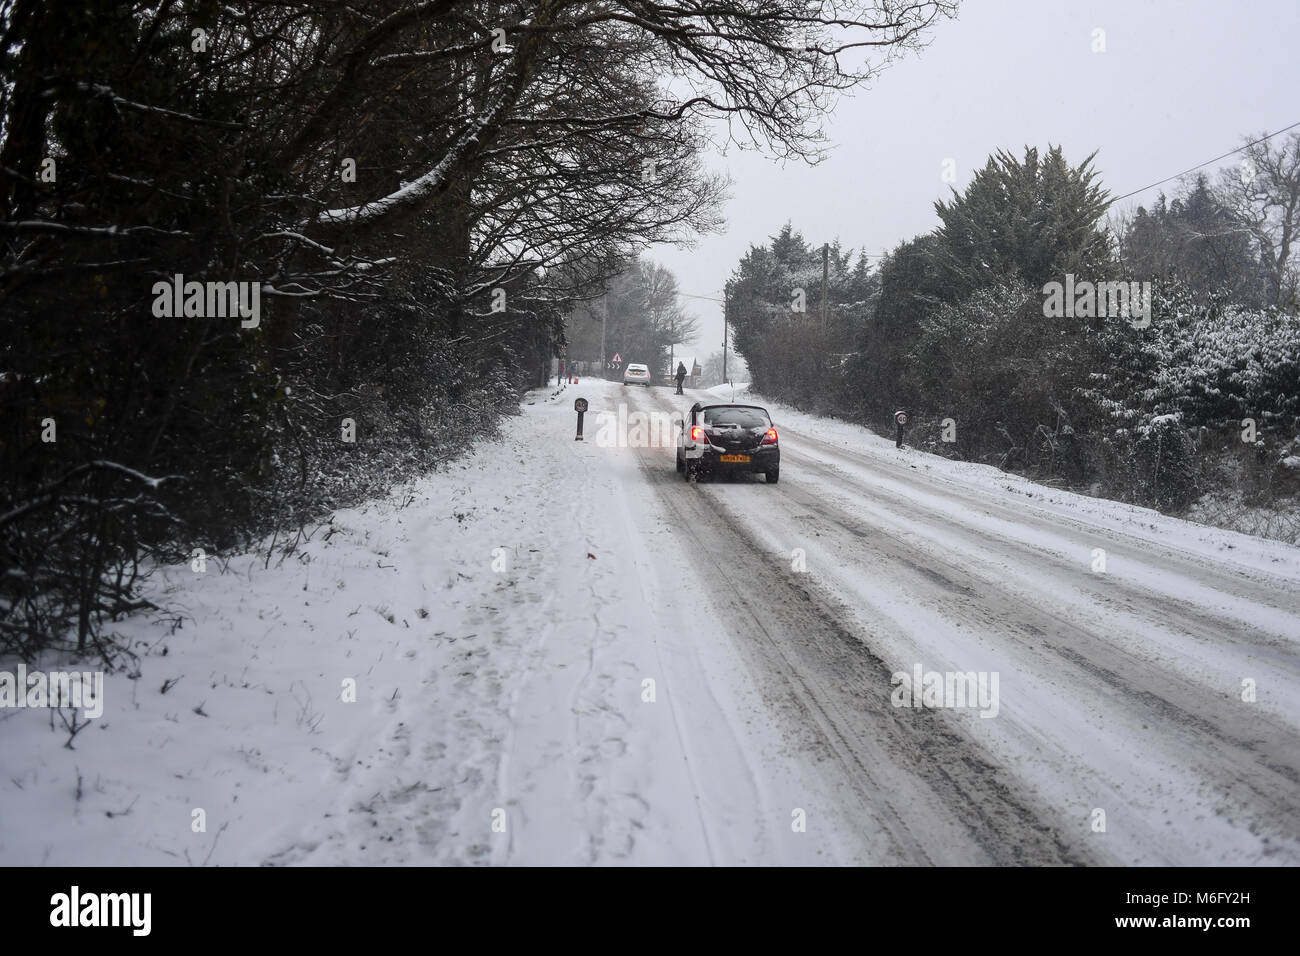 Cars struggle to get up the hills on the A36 towards Southampton UK during the freak snow storms in March 2018. - Stock Image